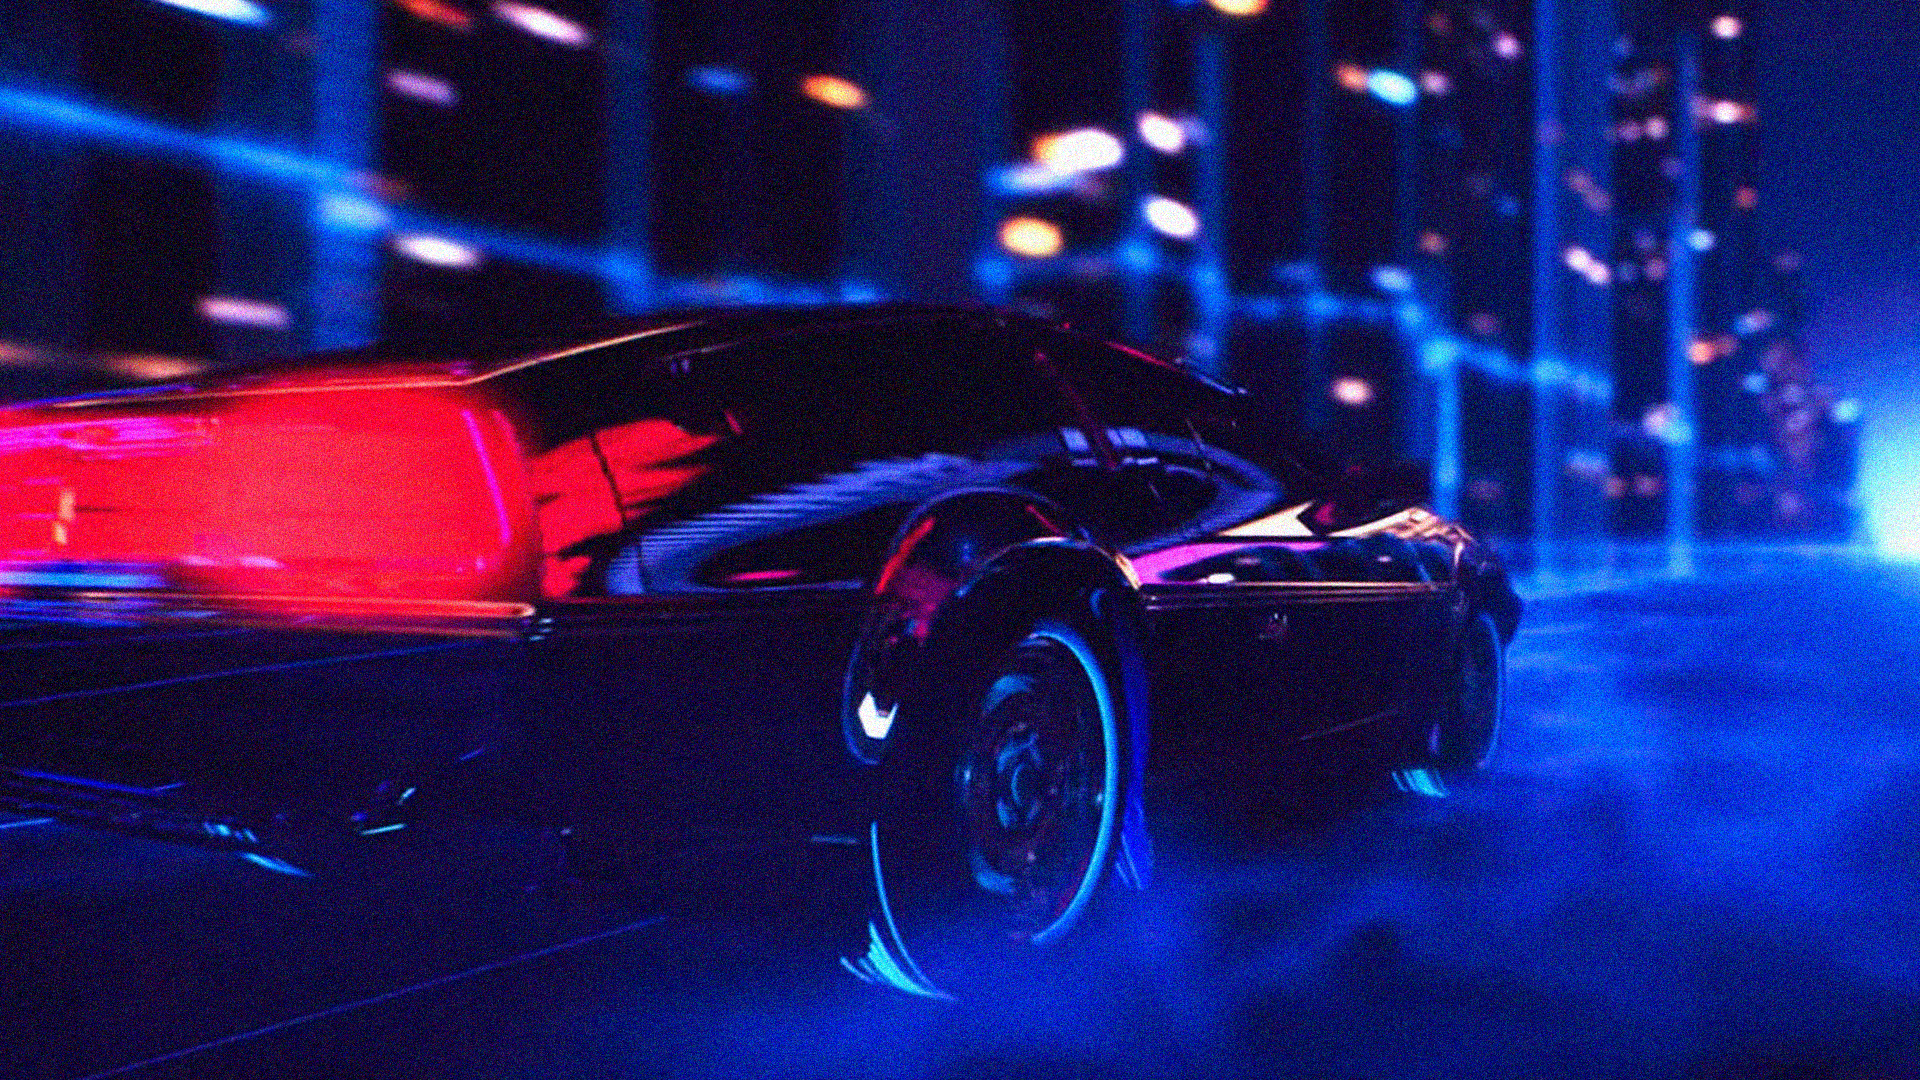 Retro Wave Car Gif 1920x1080 Wallpaper Teahub Io